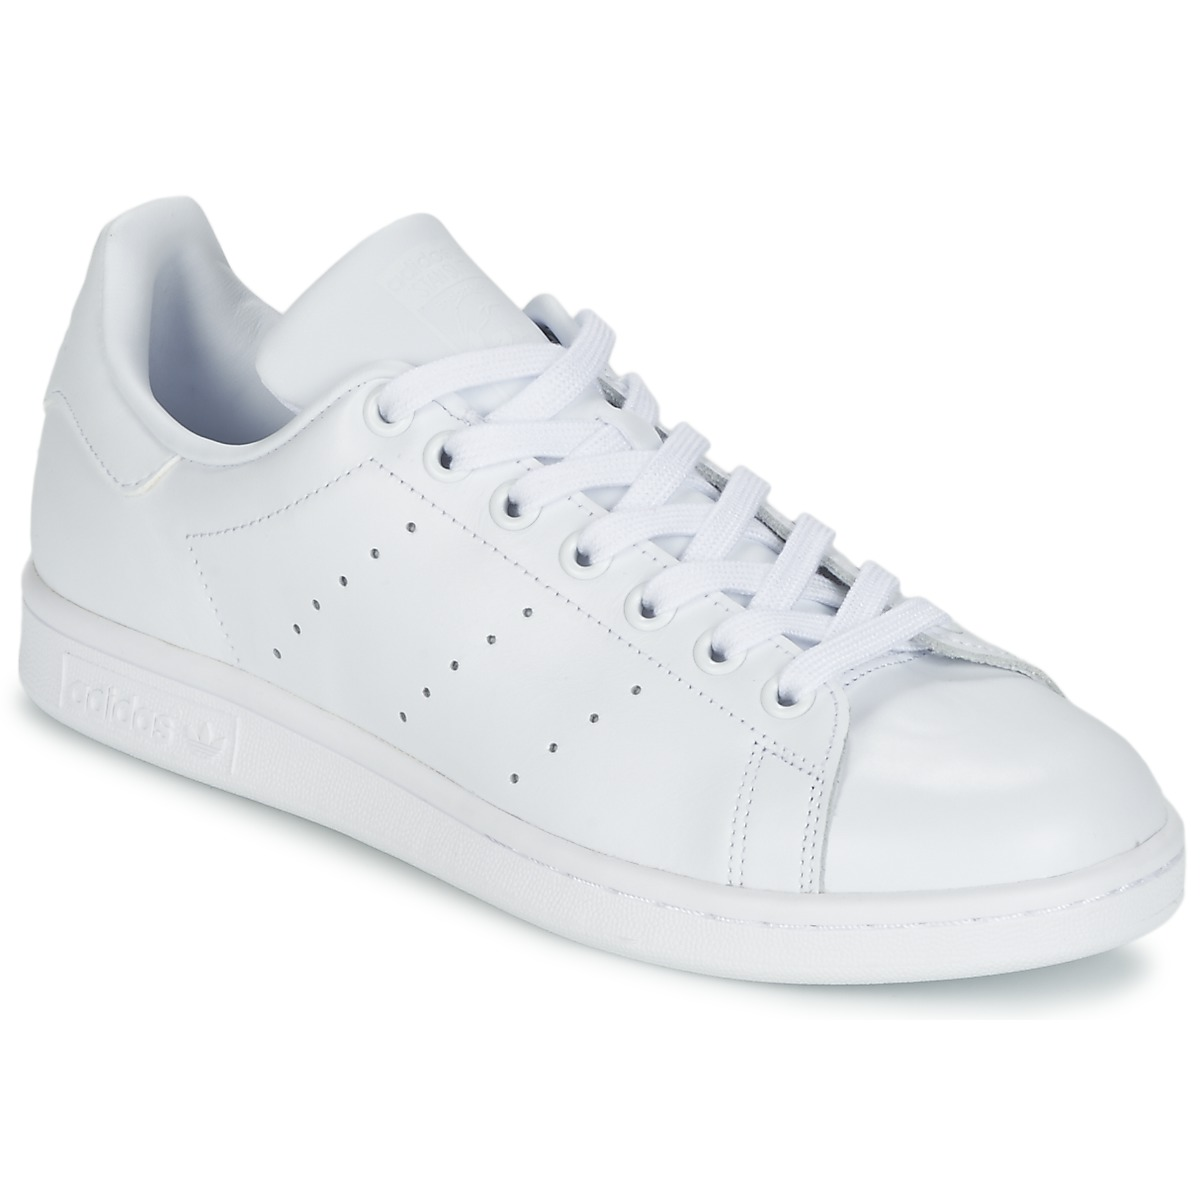 adidas stan smith blan chaussures femme. baskets mode. sneaker